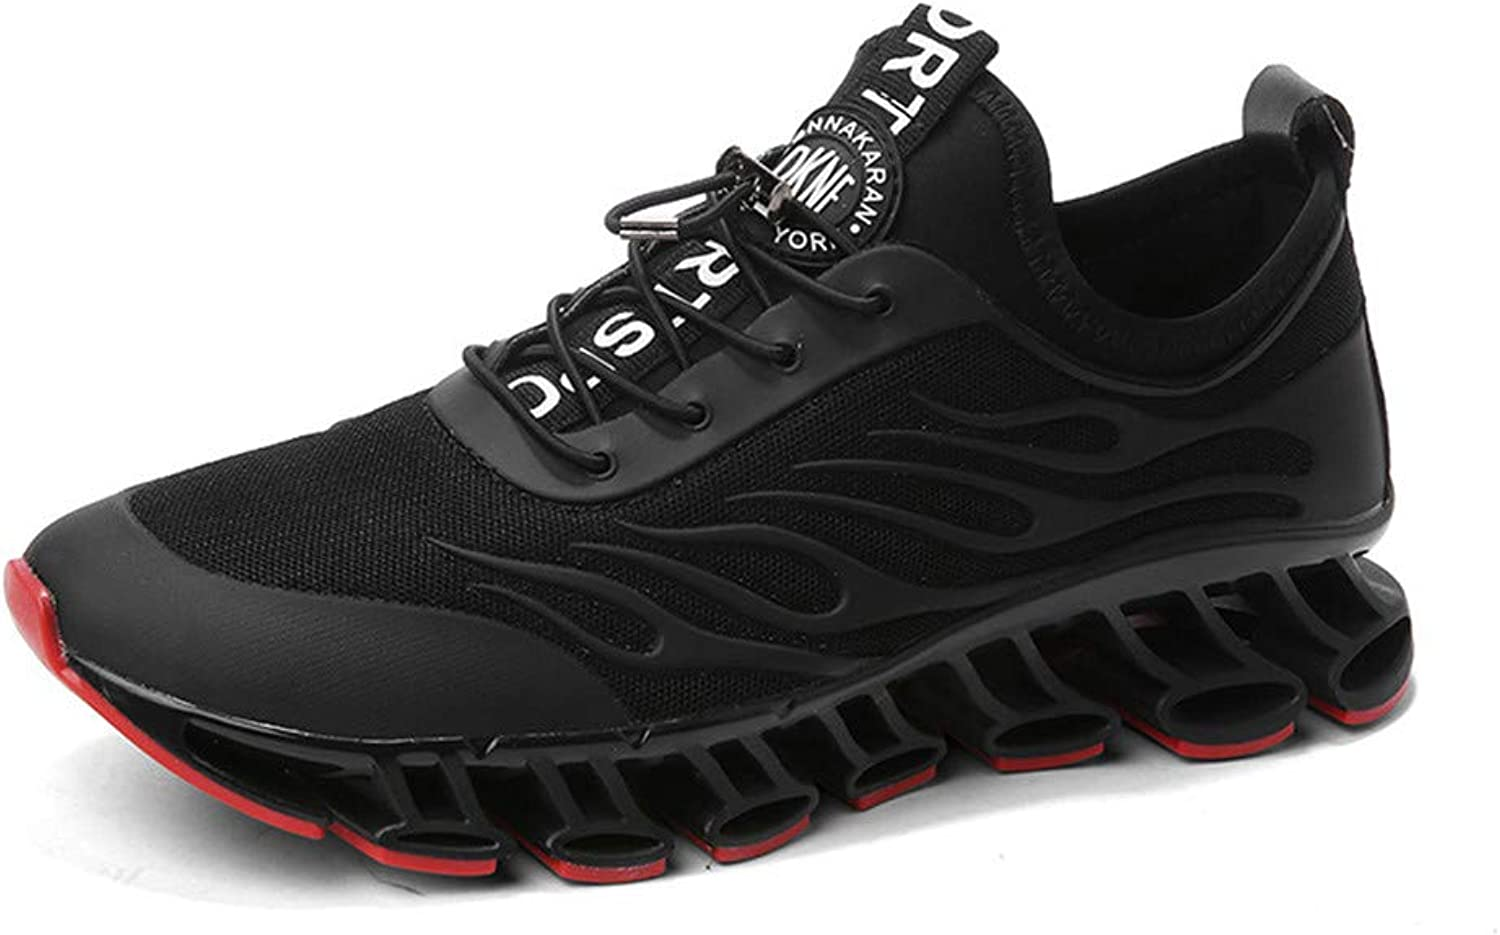 Men's fashion sports shoes spring shock running shoes breathable casual comfortable men's shoes